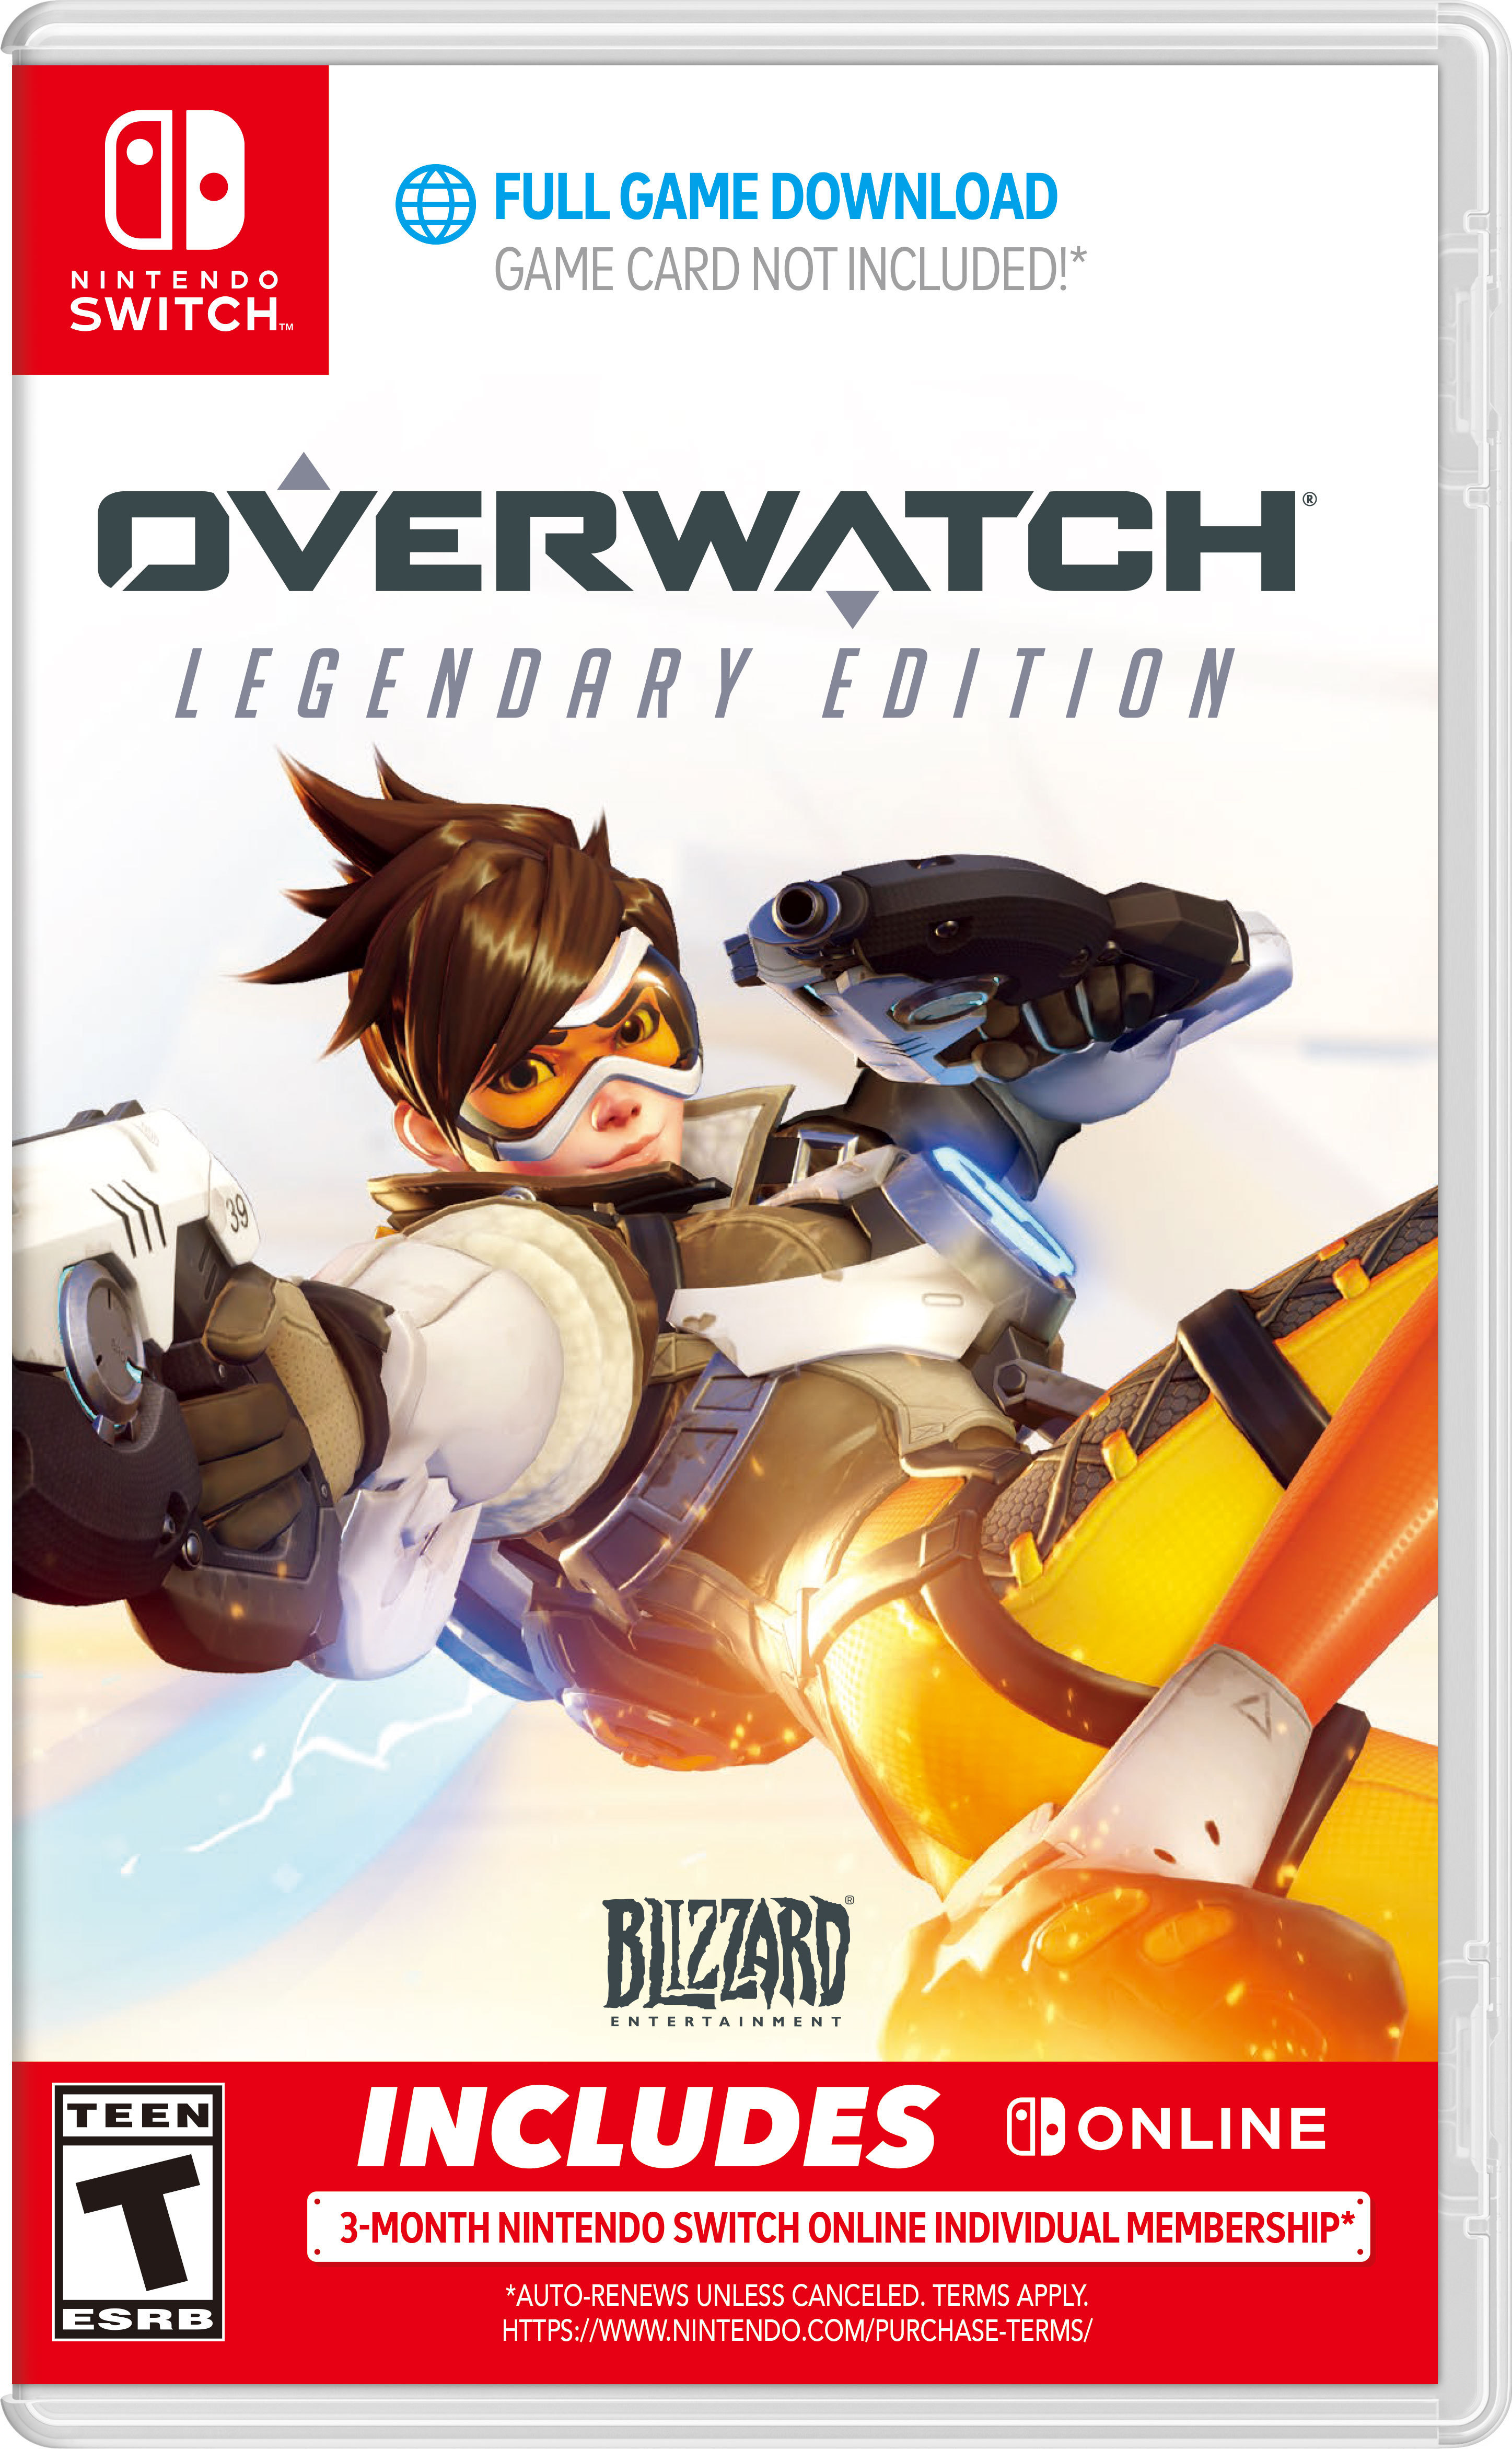 Overwatch heads to Nintendo Switch in October